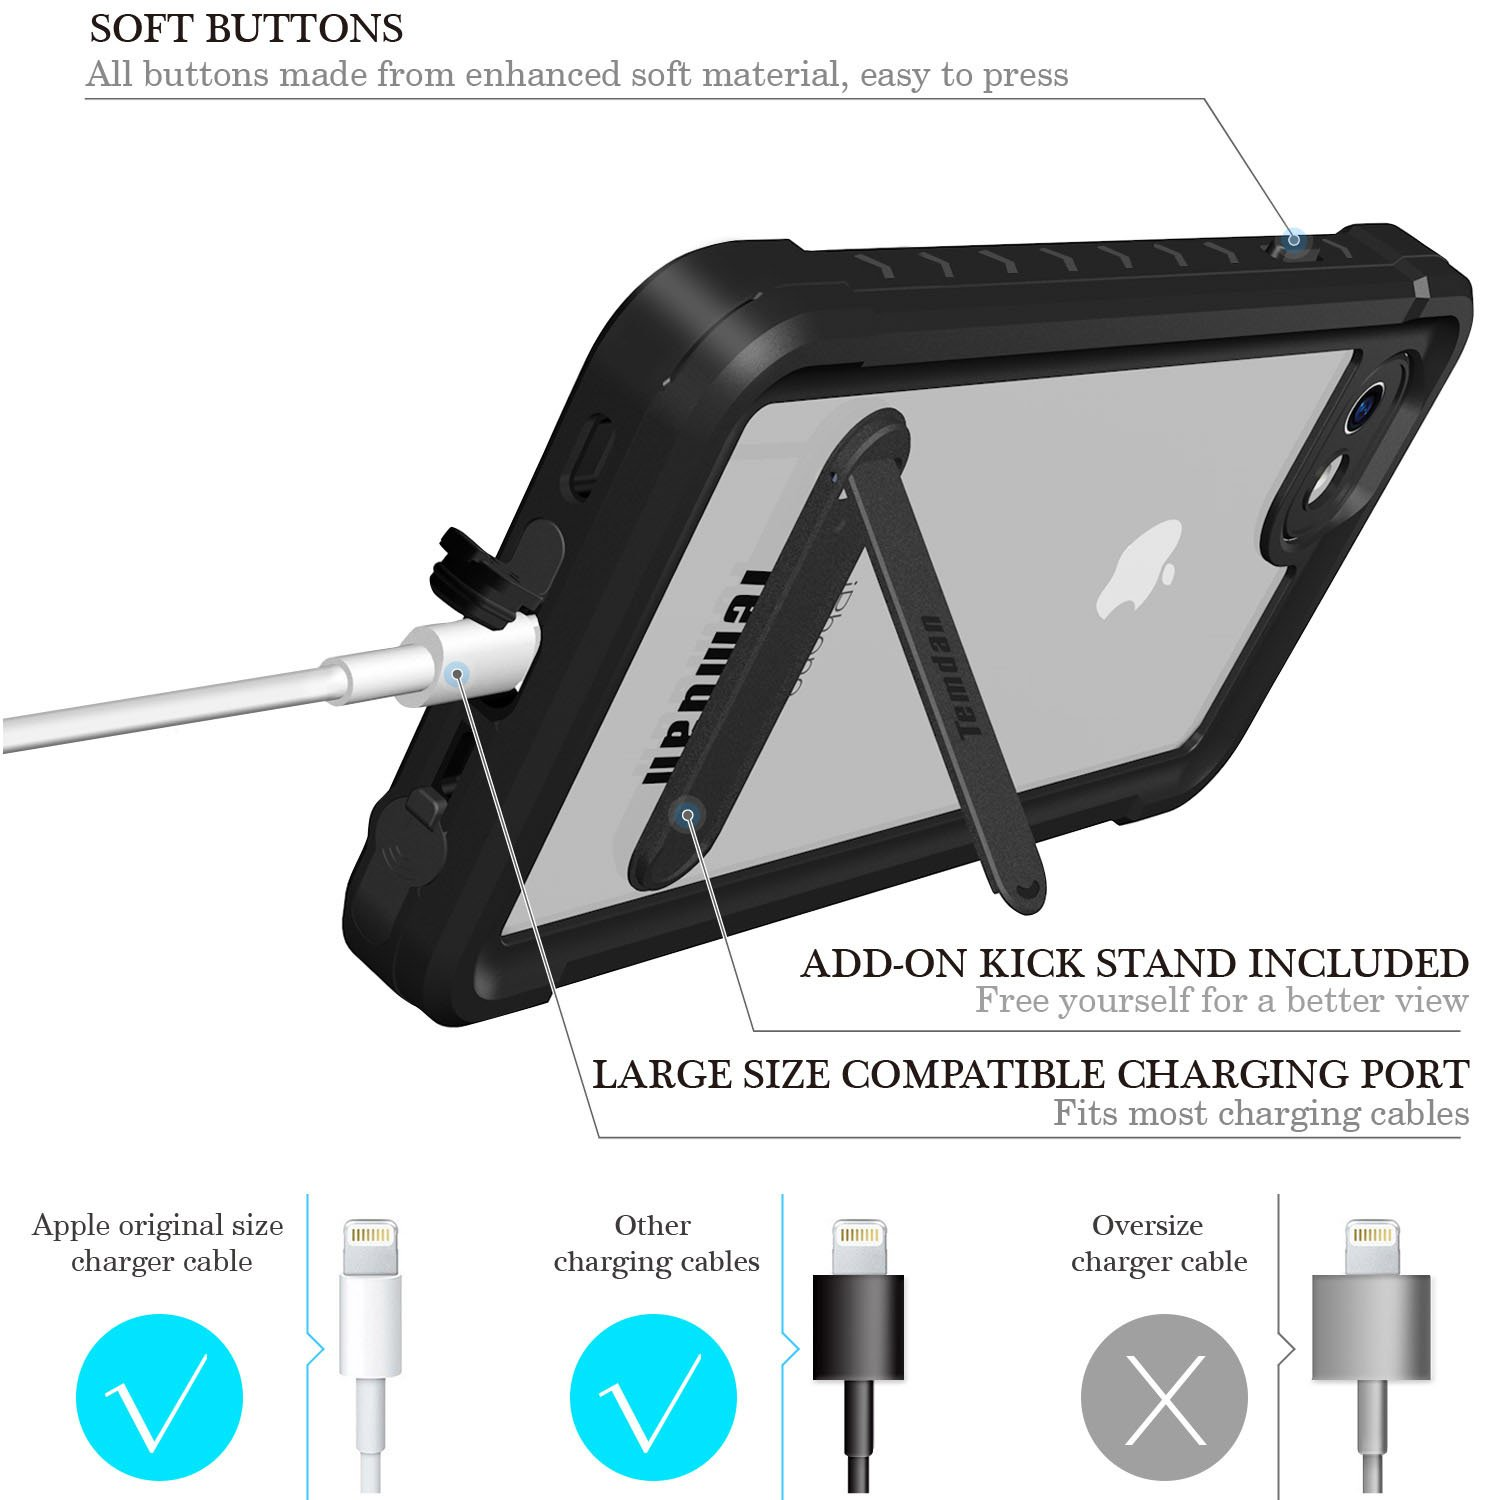 Iphone 7 8 Waterproof Case Temdan Supreme Series And This Is The Diagram Of Cable I Made For Myself Provided As With Carabiner Built In Screen Protector Outdoor Rugged Shockproof Clear